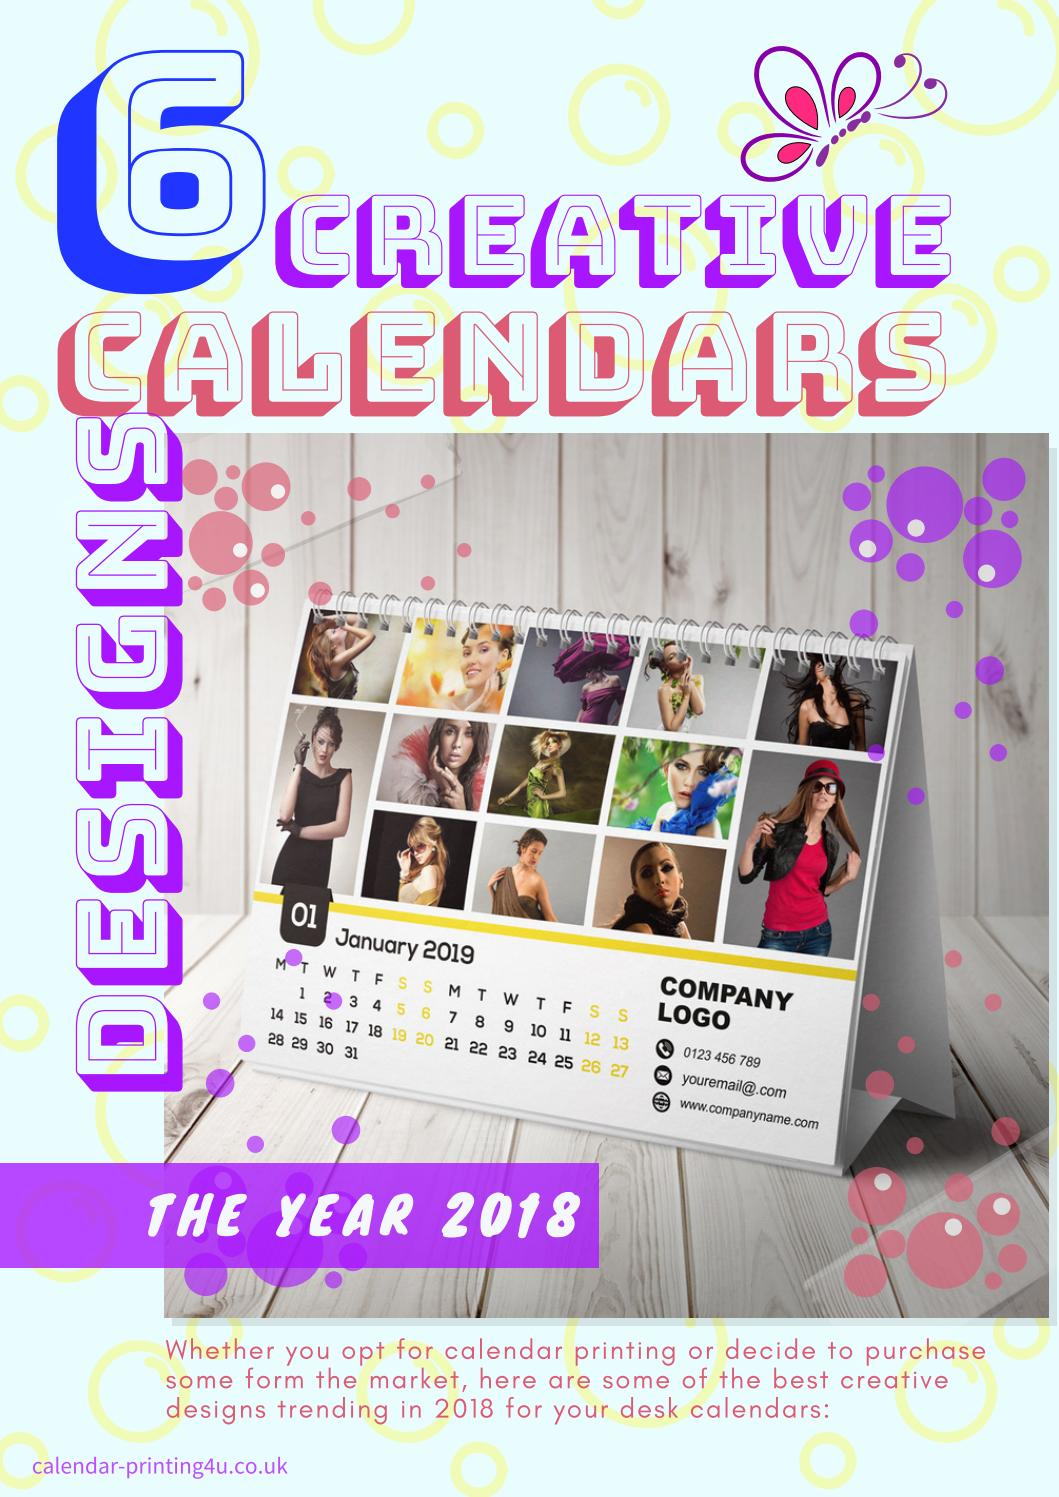 6 Creative Calendar Design Ideas For Your Desk For The Year